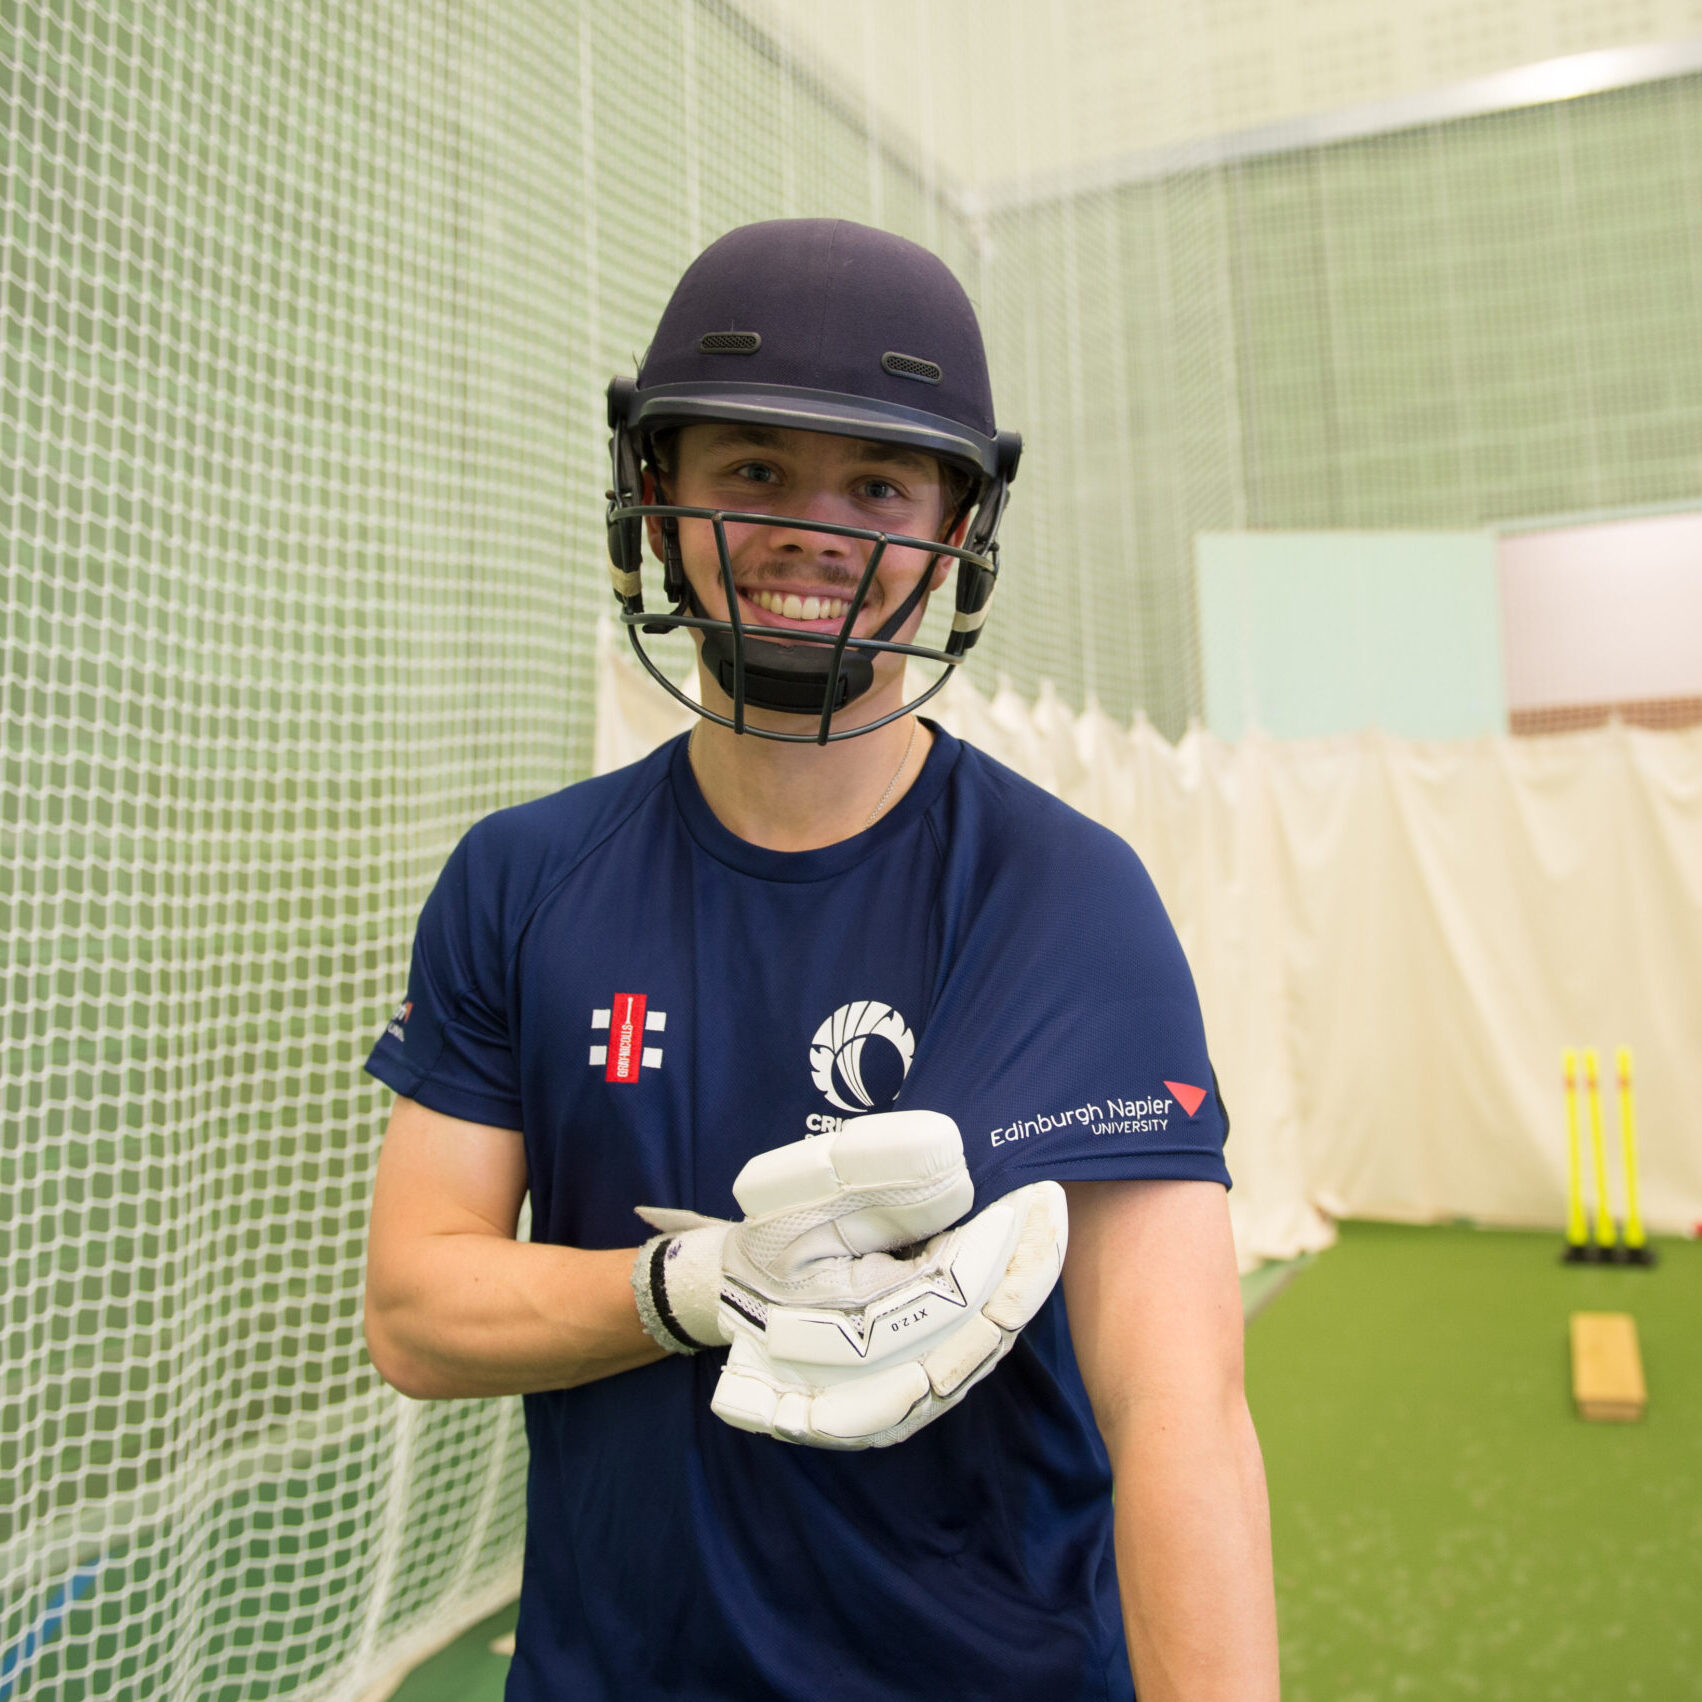 Edinburgh Napier Cricket National Performance Academy